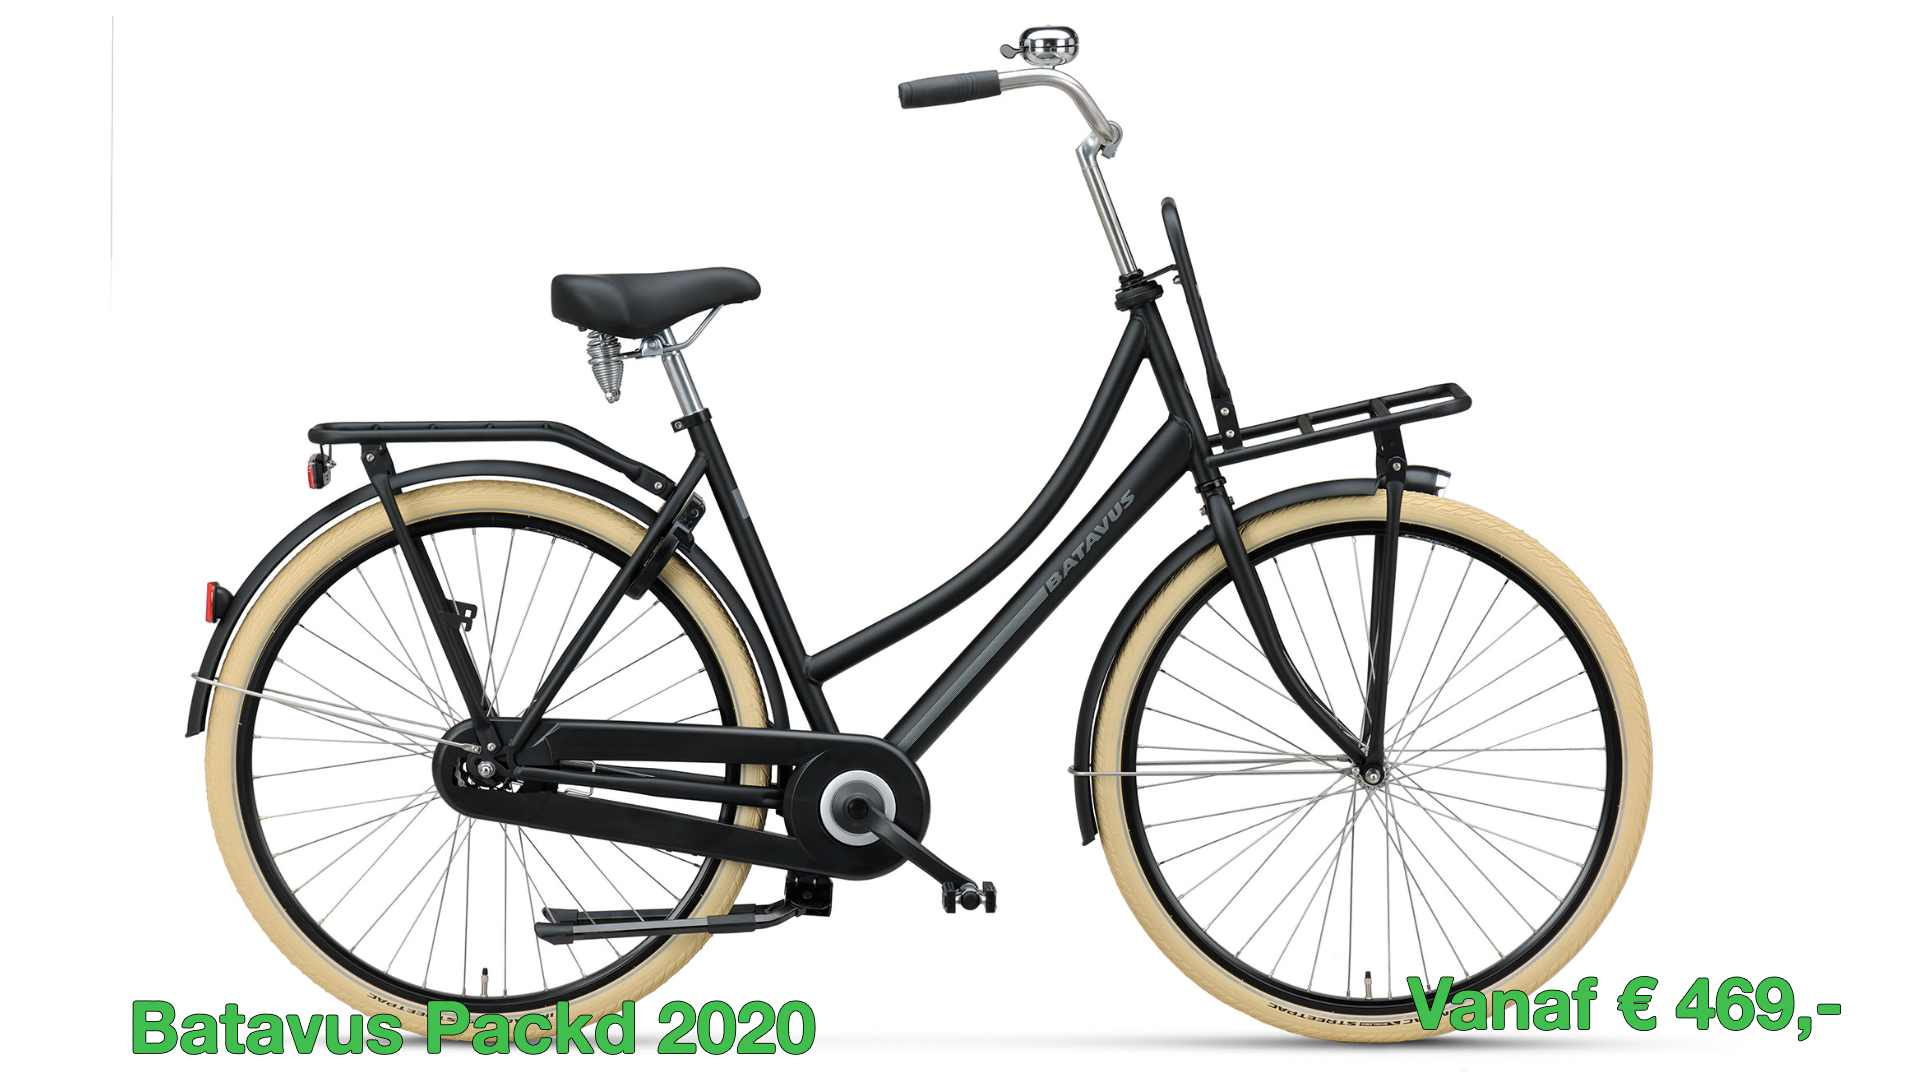 Oma fiets 2020 Hoofddorp